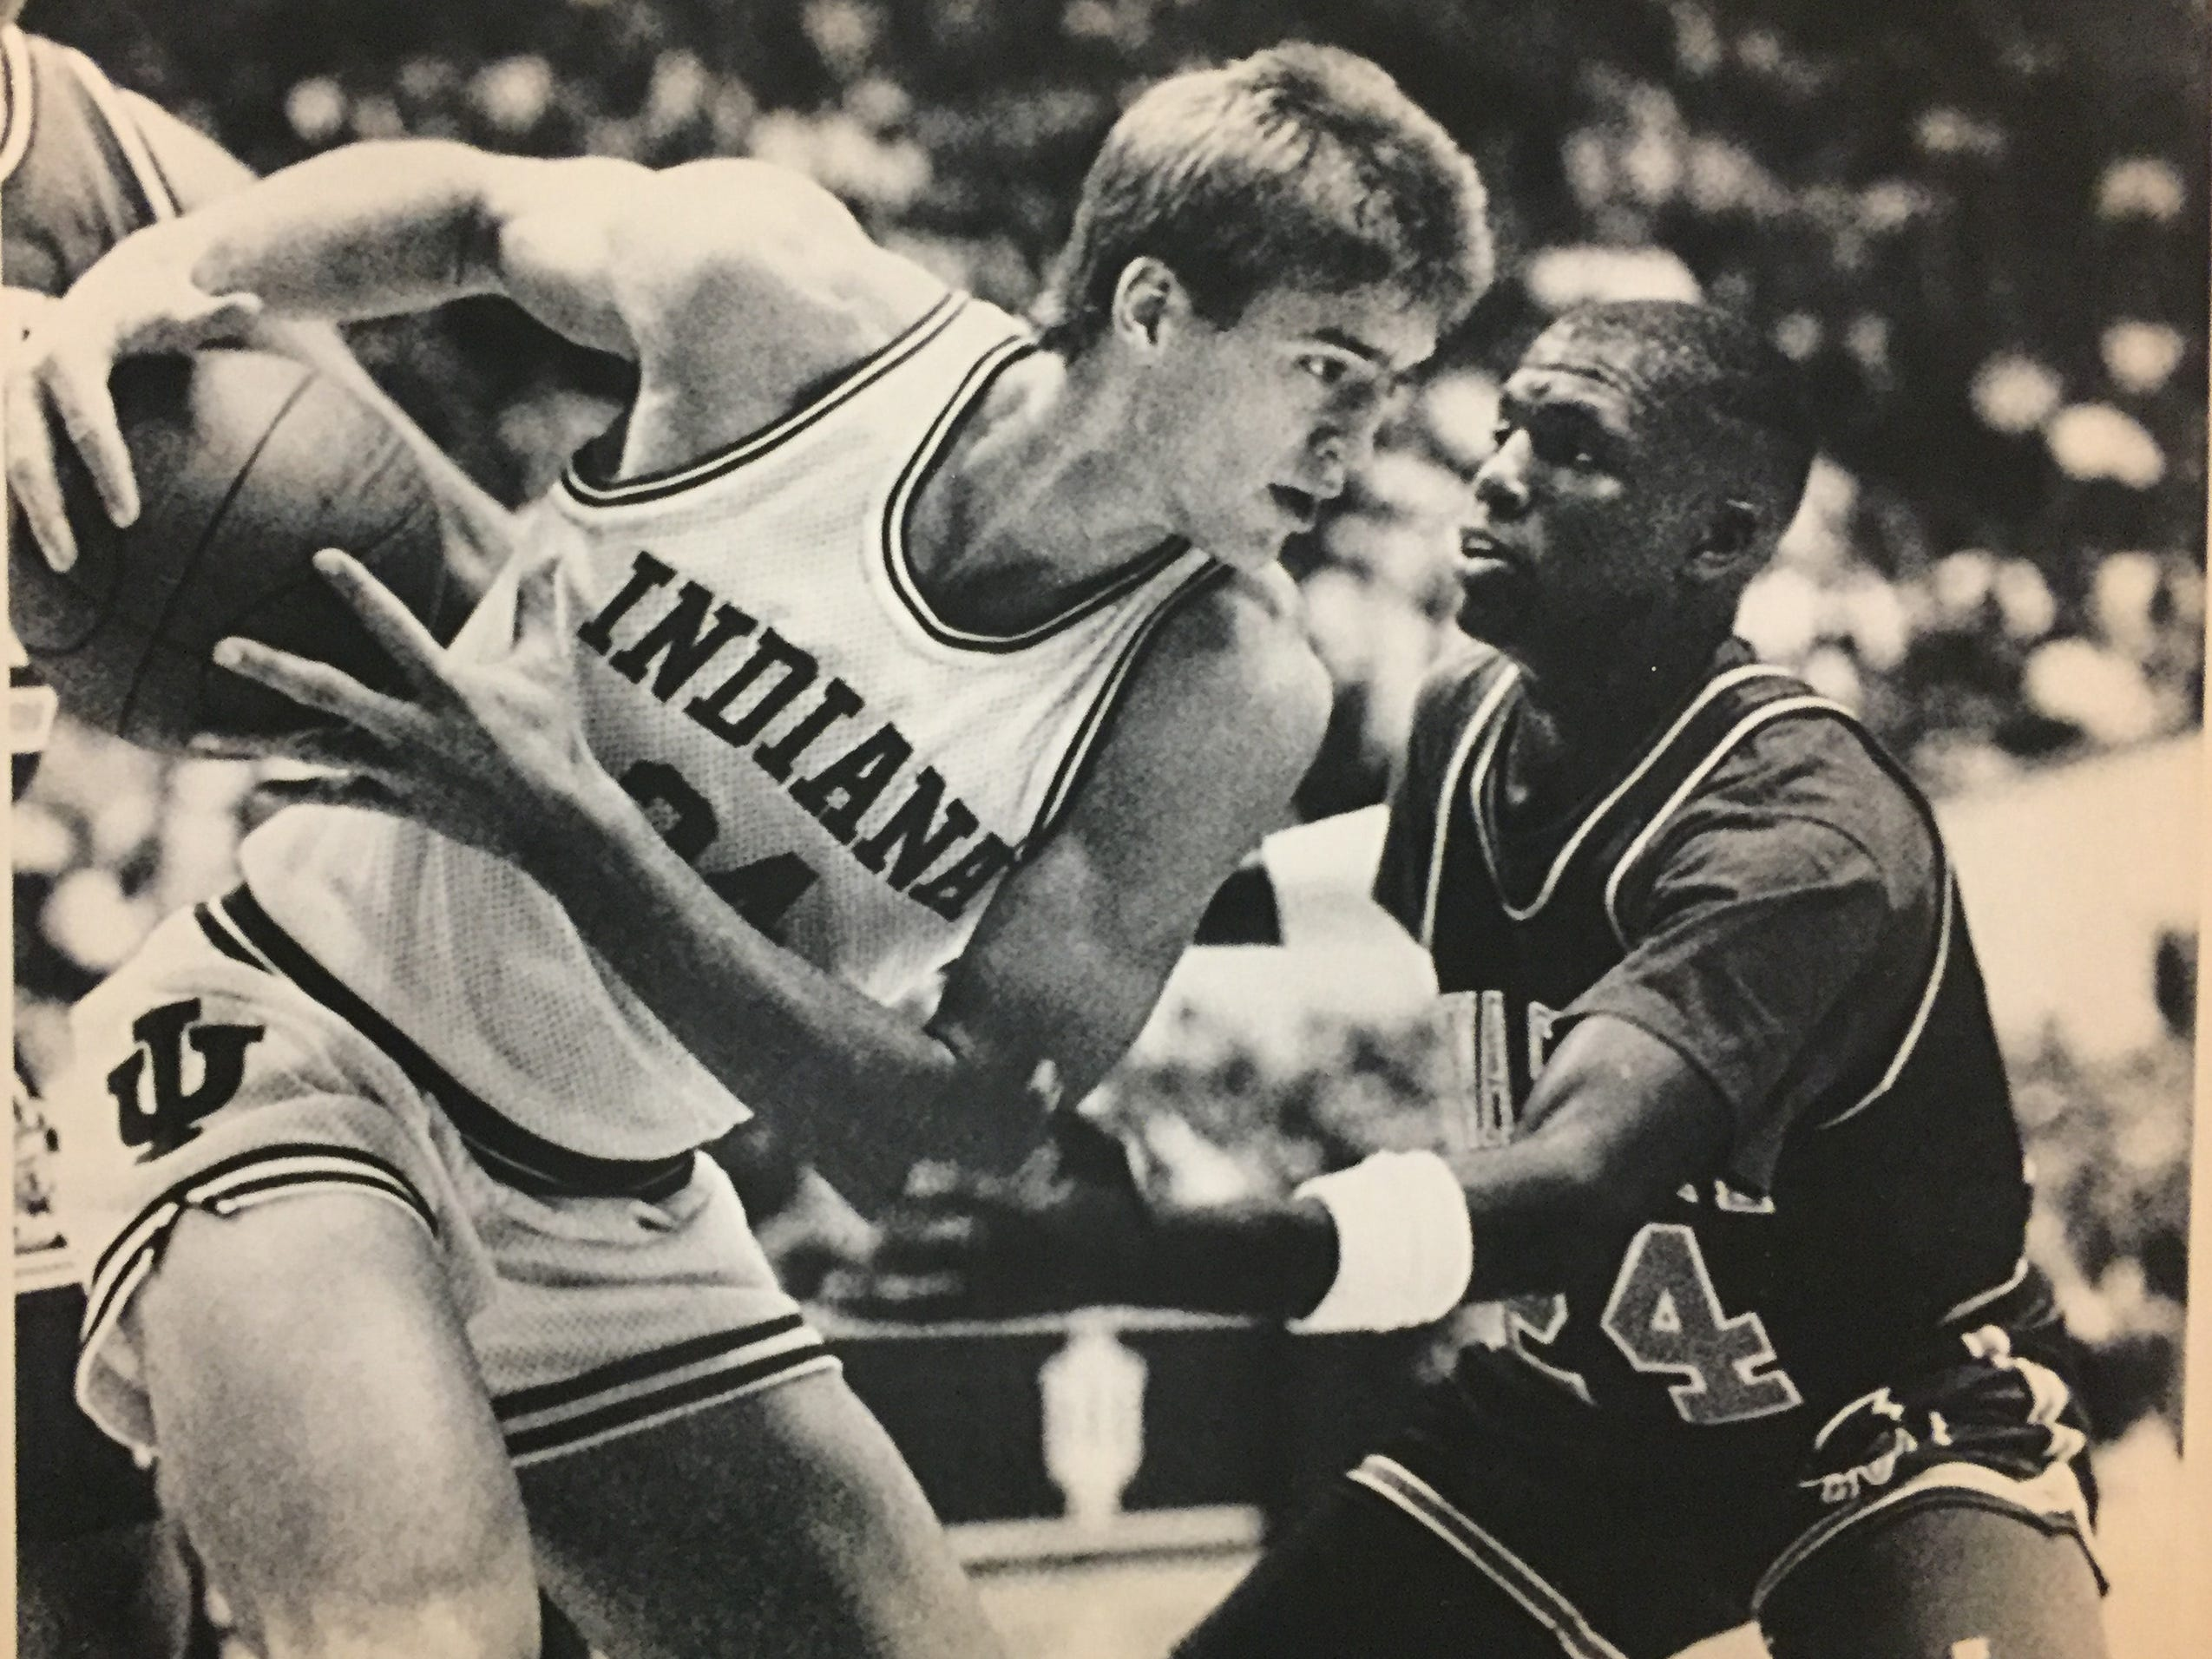 IU's Matt Nover pulls a rebounds away from Iowa State's Justus Thigpen, Dec. 23, 1989.